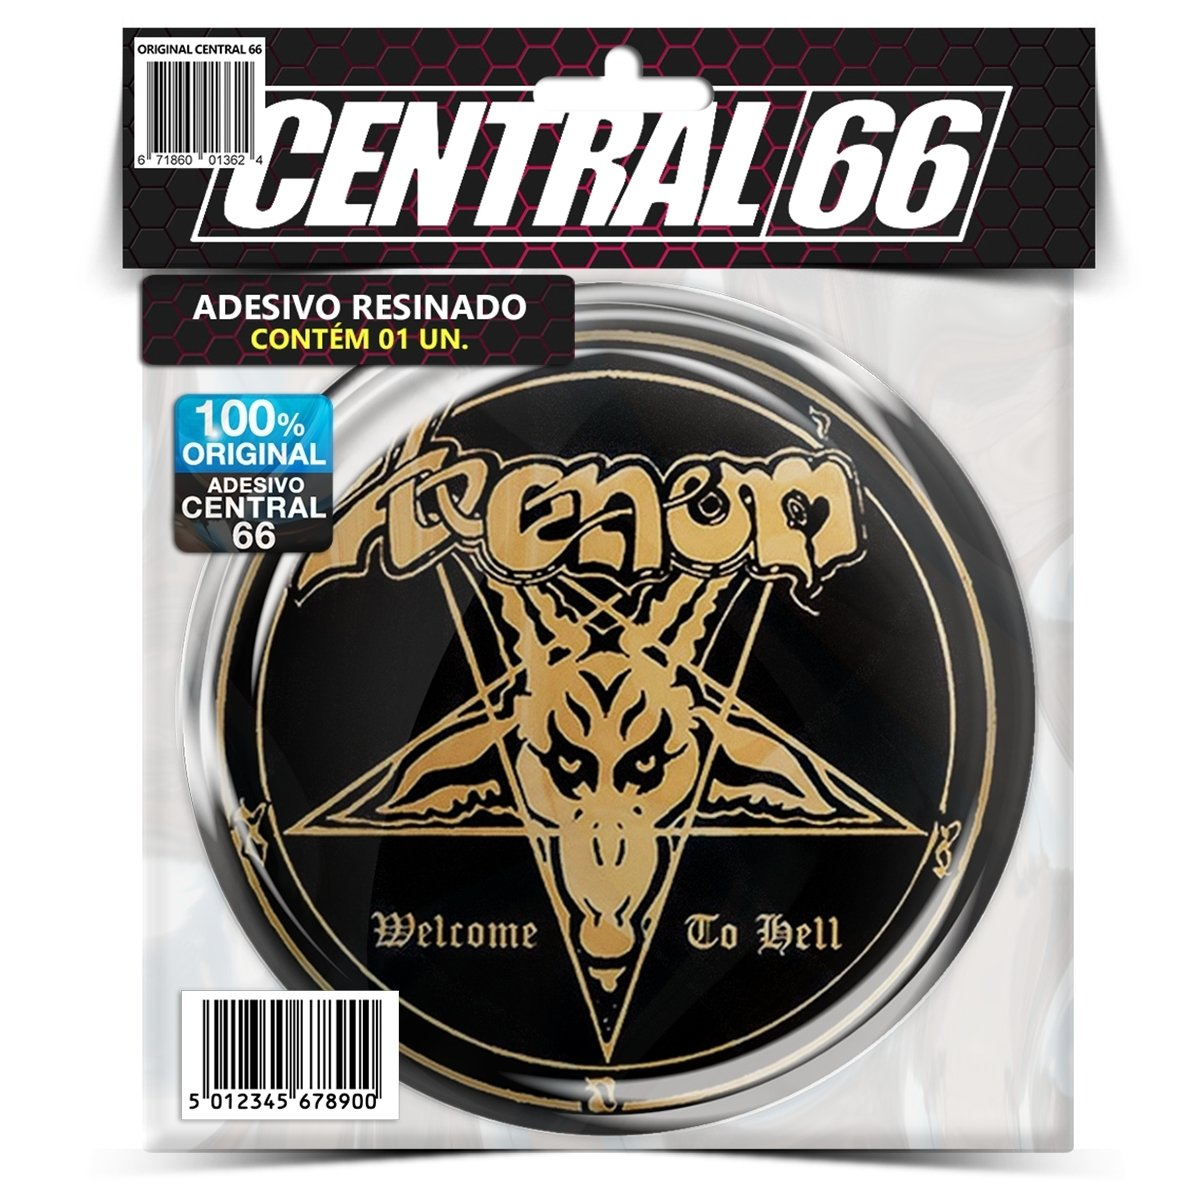 Adesivo Redondo Venom Welcome to Hell Pentagrama – Central 66